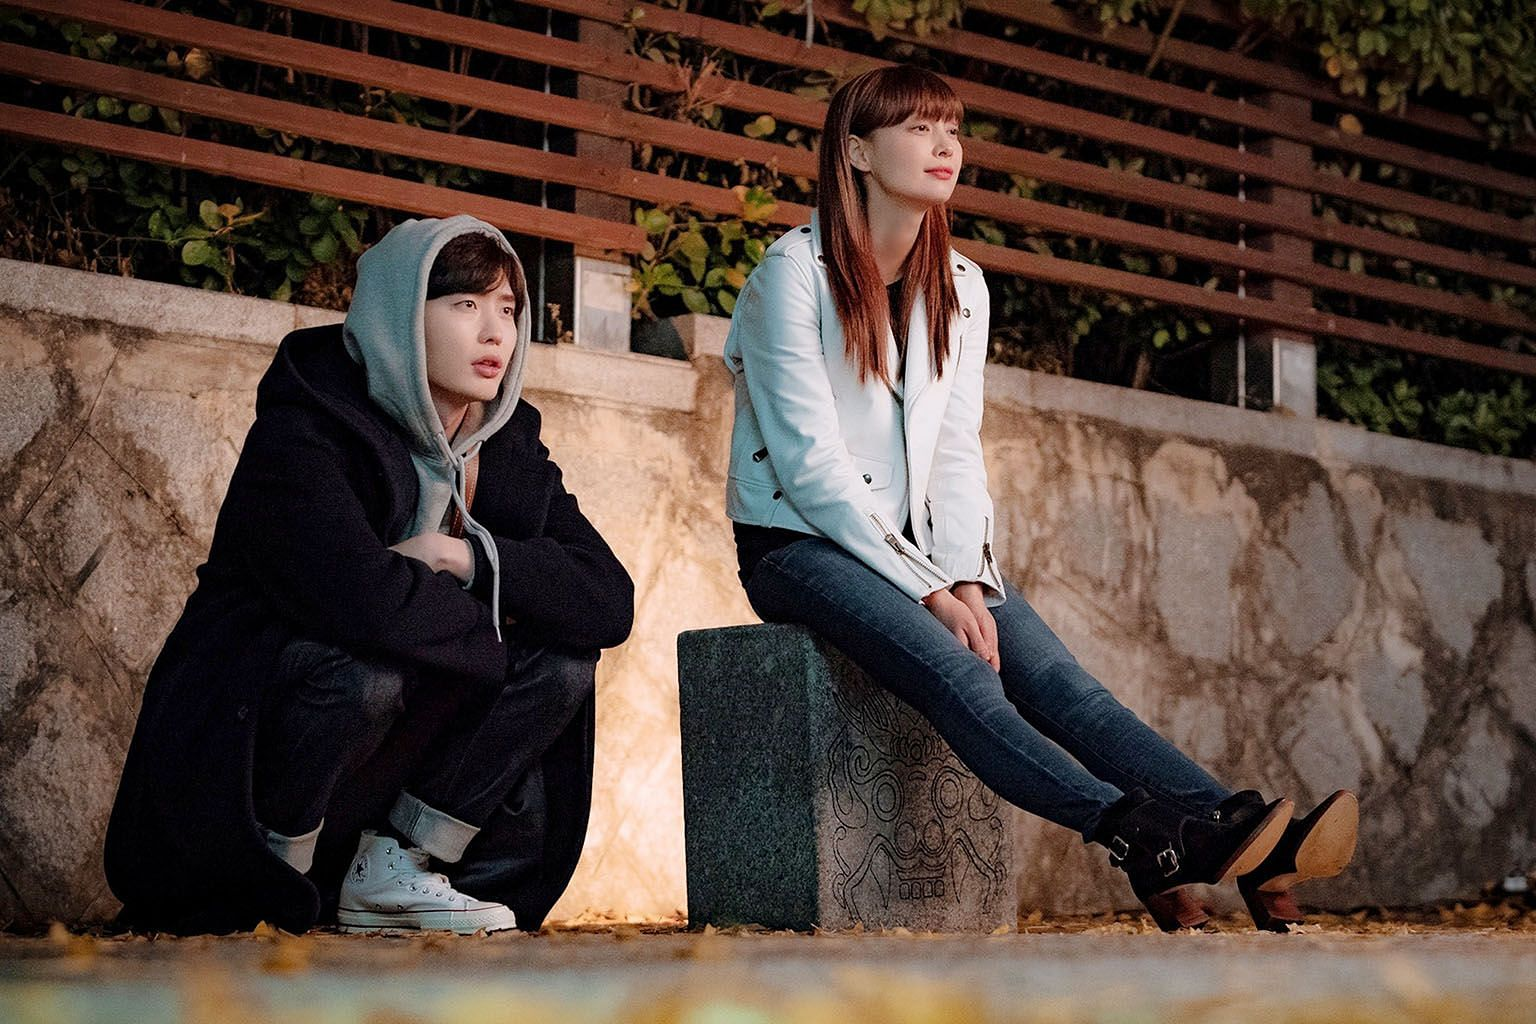 In Romance Is A Bonus Book, Lee Jong-suk plays an editor-in-chief who has carried a torch for his older friend, a divorcee played by Lee Na-young (both above).